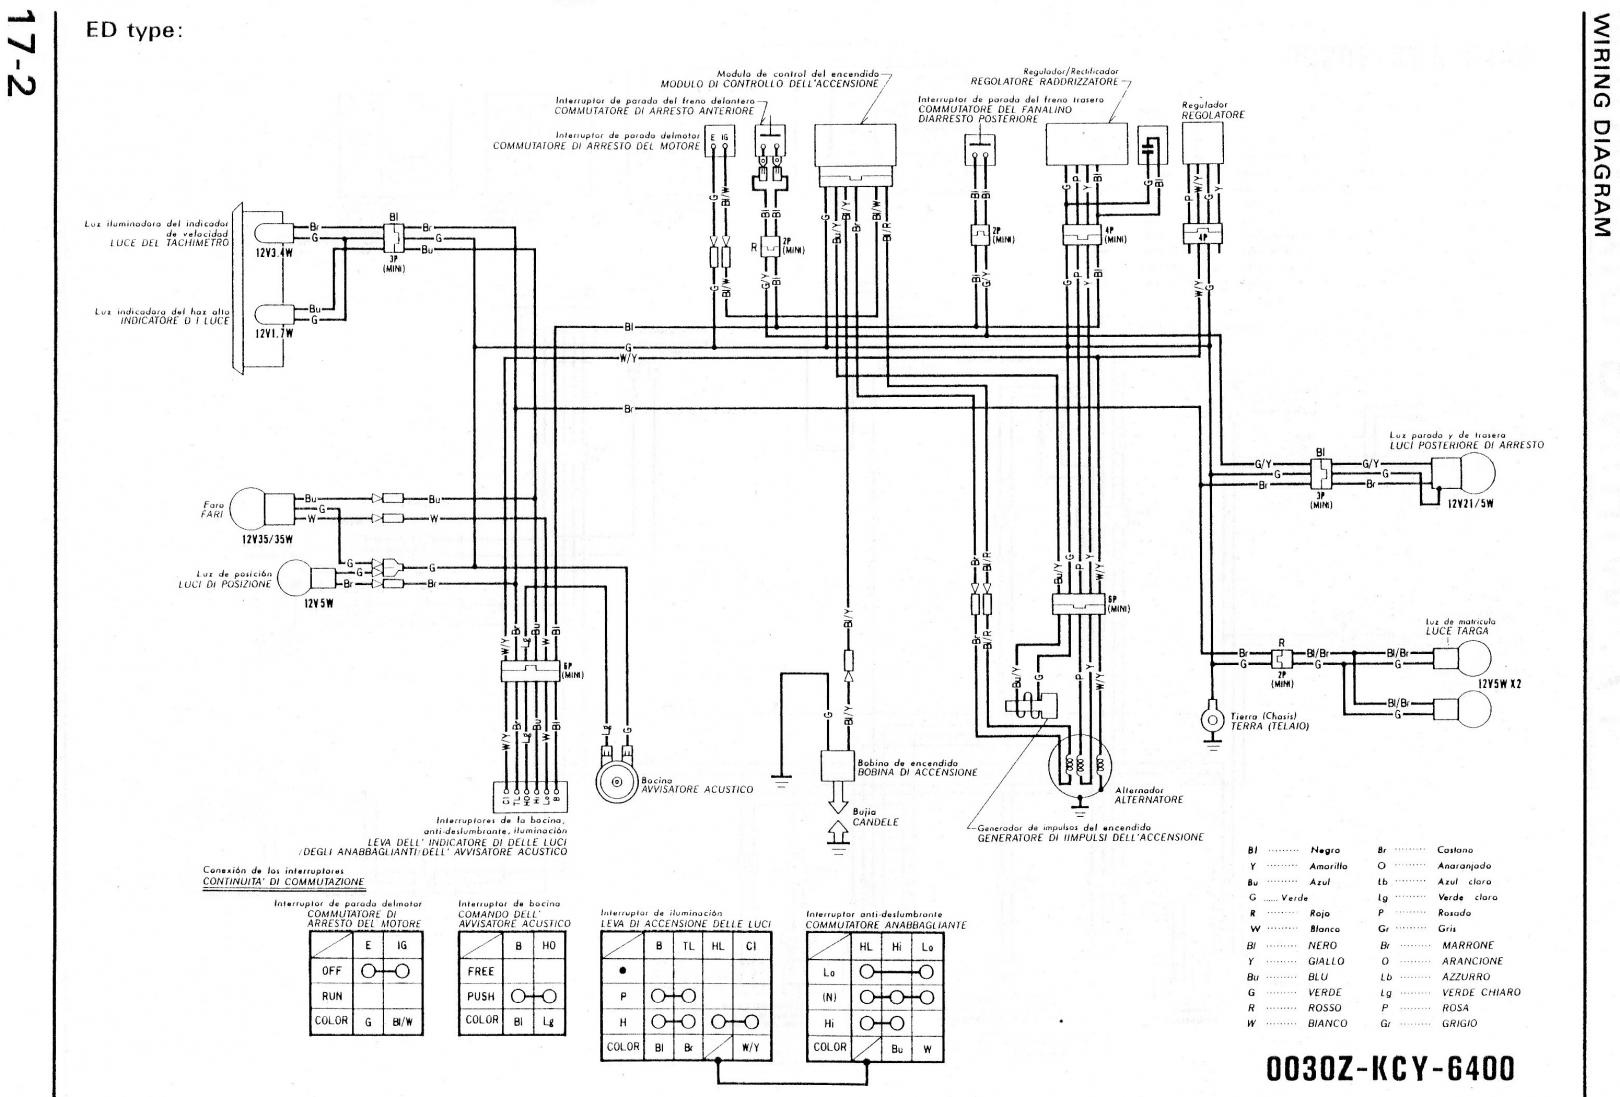 [DIAGRAM] 1995 Lexus Sc400 Stereo Wiring Diagram FULL